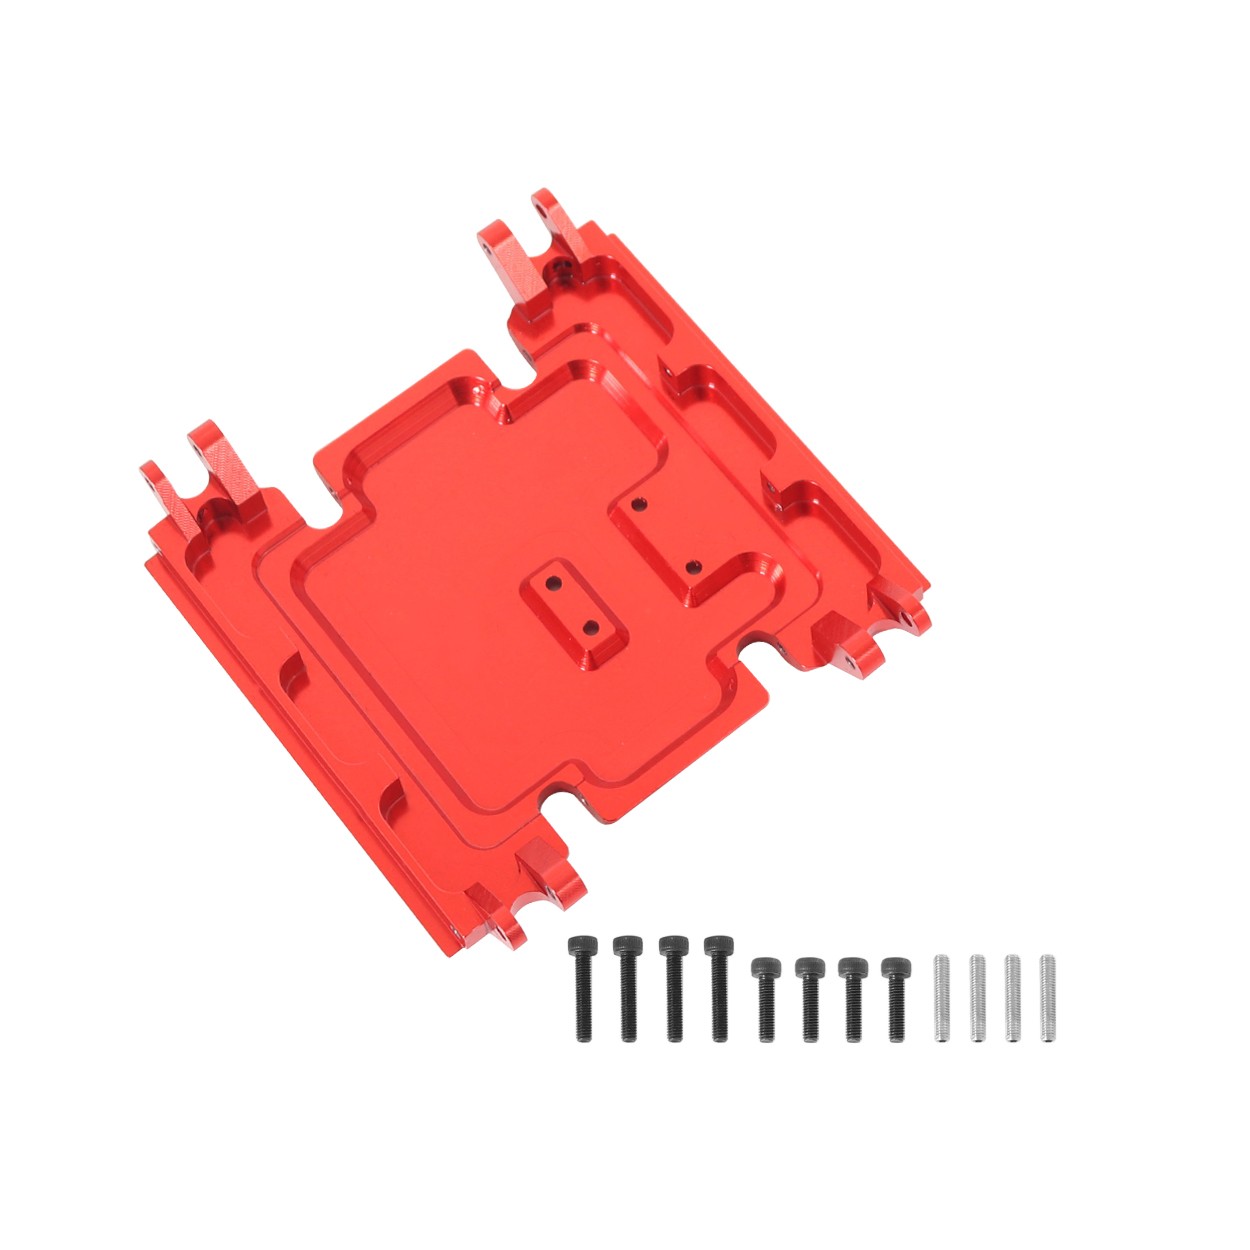 Center Gear Box Mount CNC Aluminum Skid Plate For 1:10 RC Crawler Car Axial Wraith 90018 red